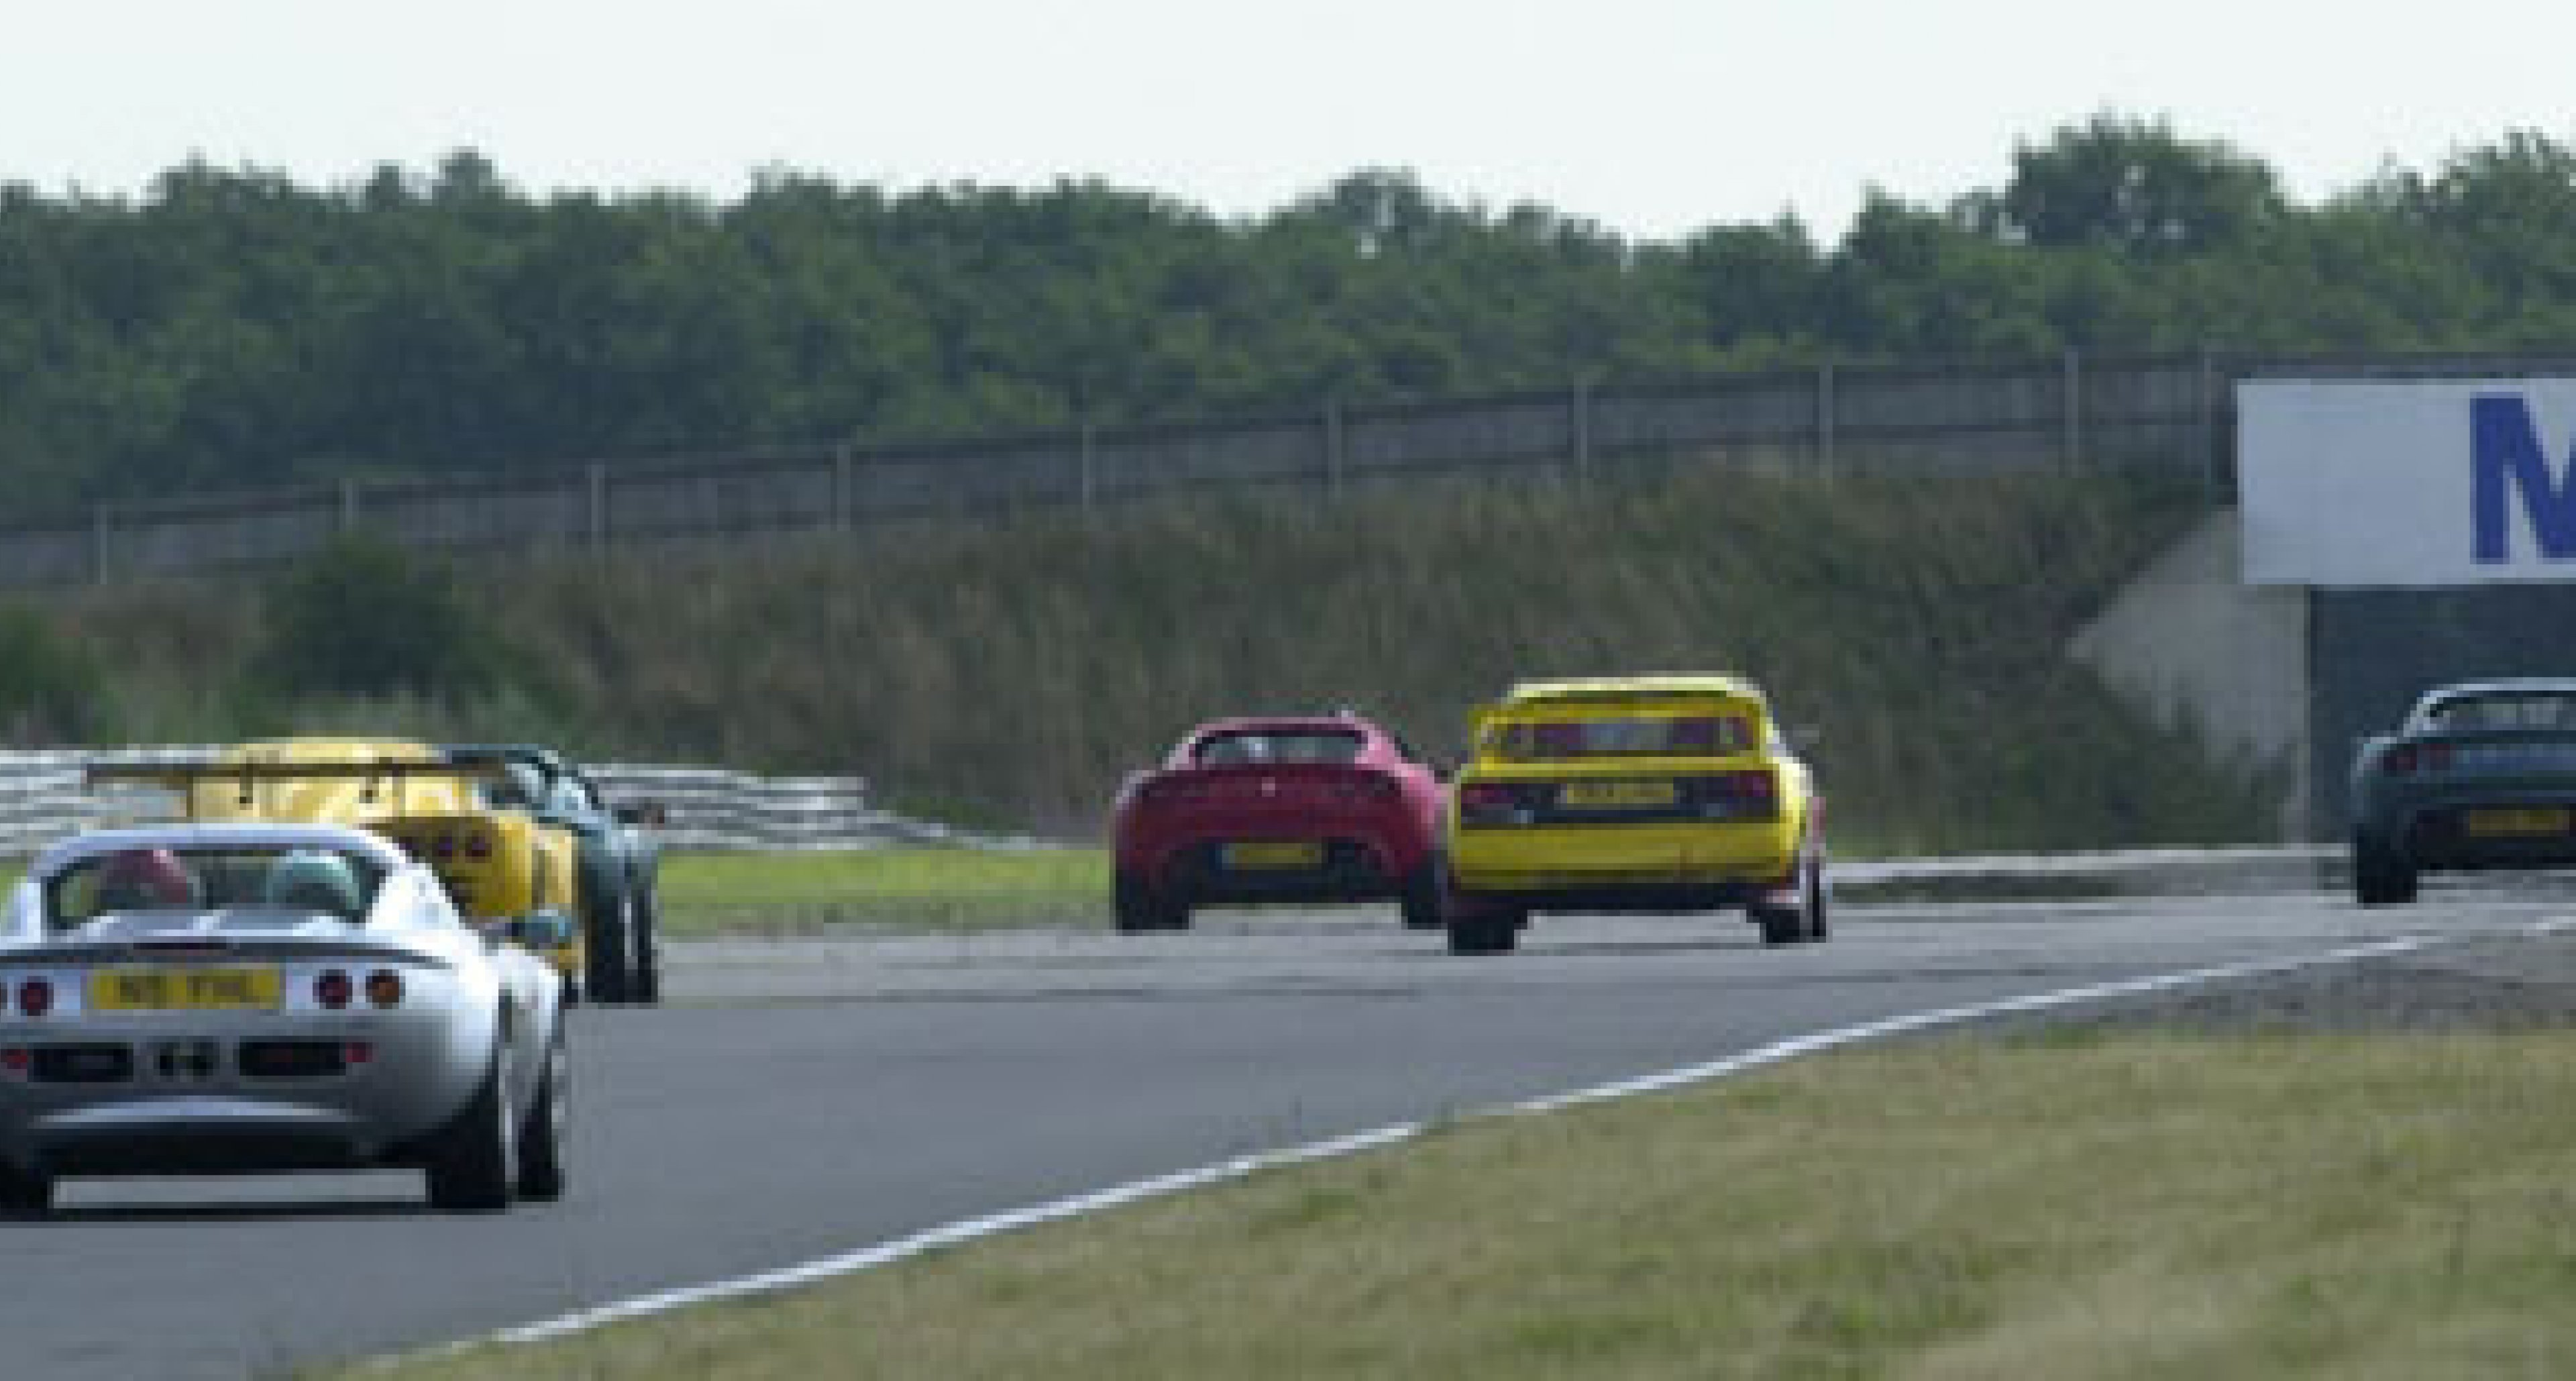 Heritage Trackdays announce full 2004 UK driving day programme